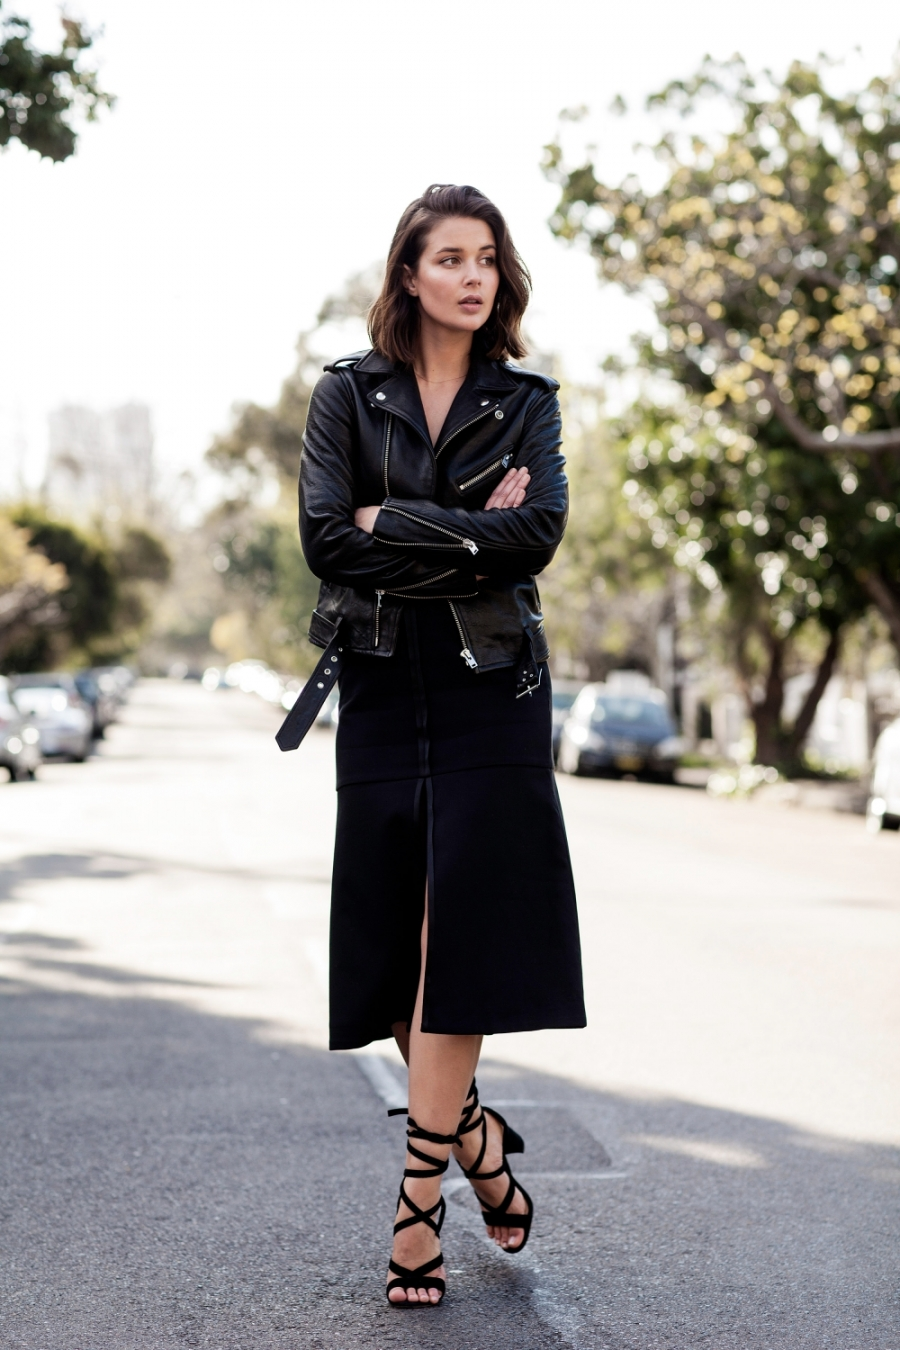 This leather jacket goes perfectly with strappy sandals and a black skirt.Via Sara Donaldson. Leather jacket: IRO.